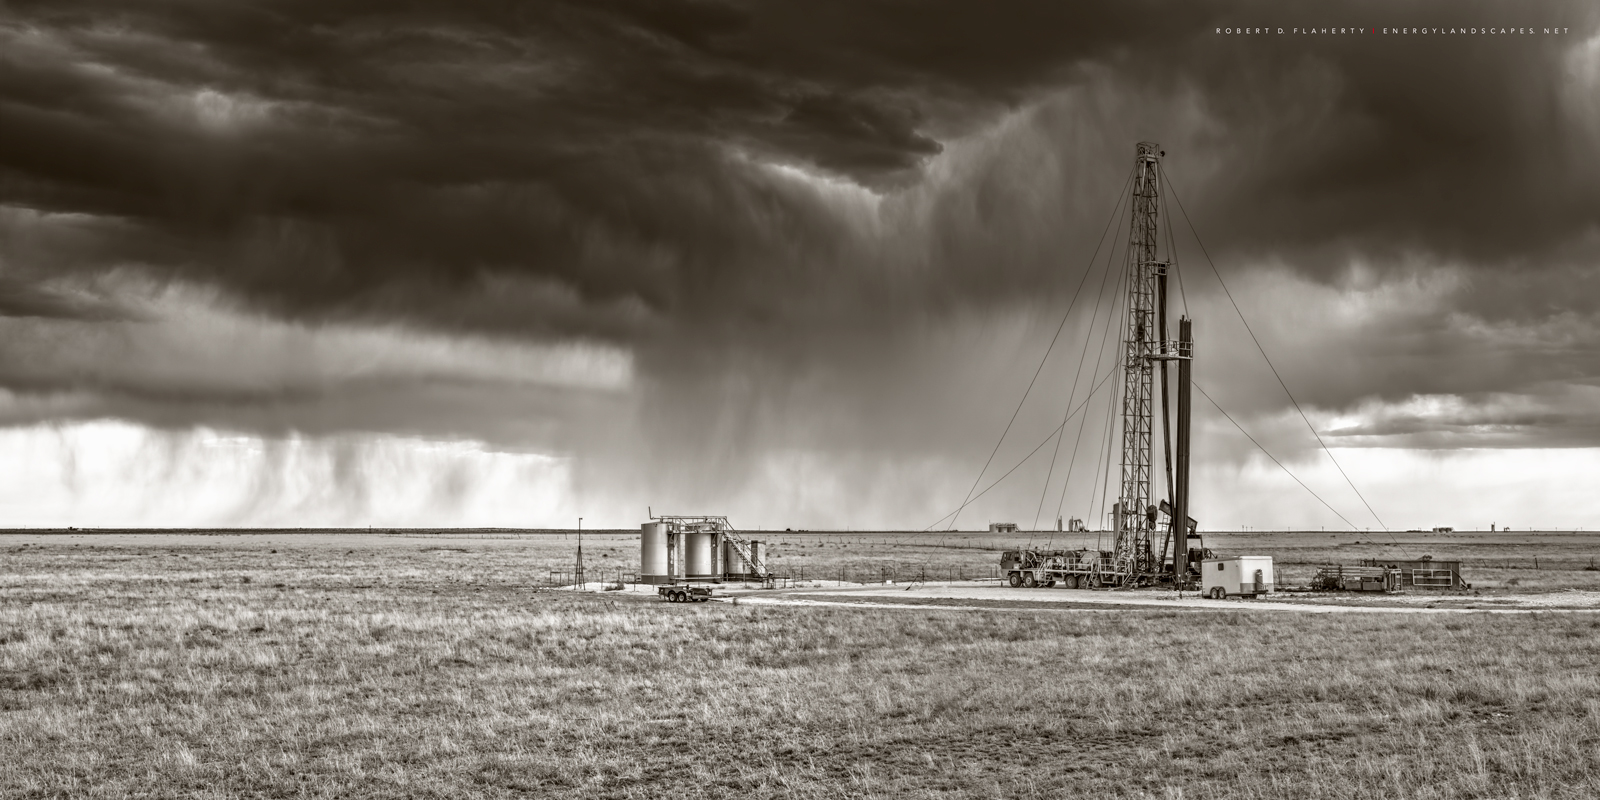 well services unit, work over rig, New Mexico, clouds, sky, black & white, sepia, photo